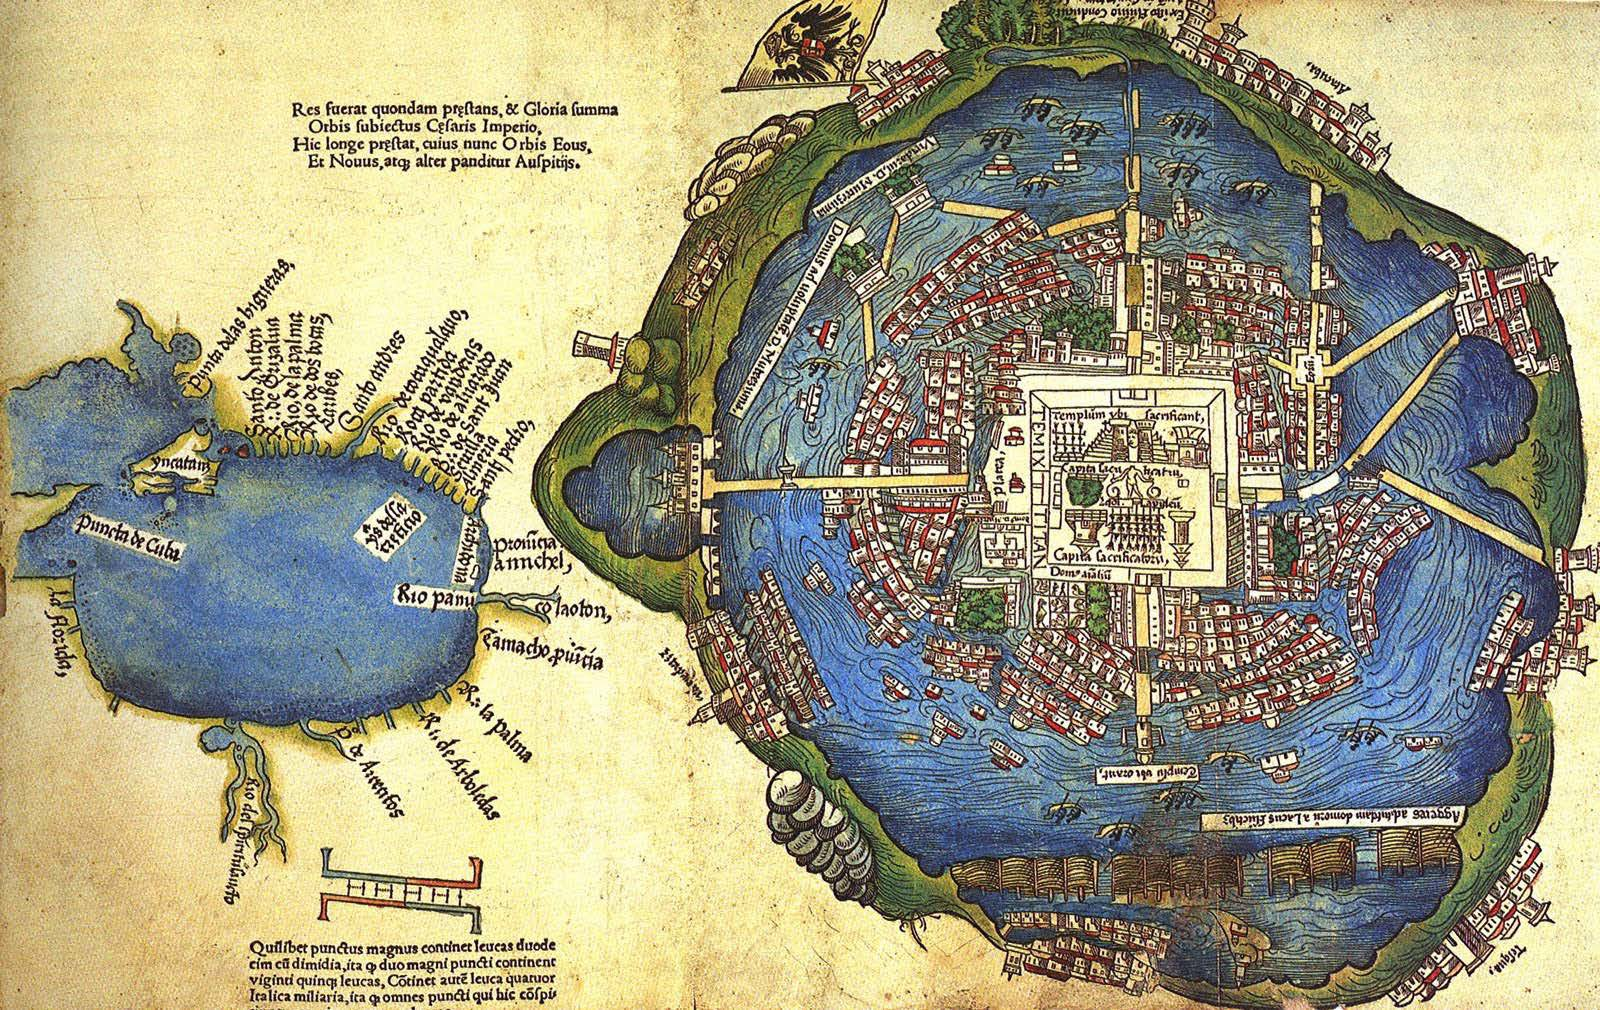 Map of Tenochtitlán and Gulf of Mexico